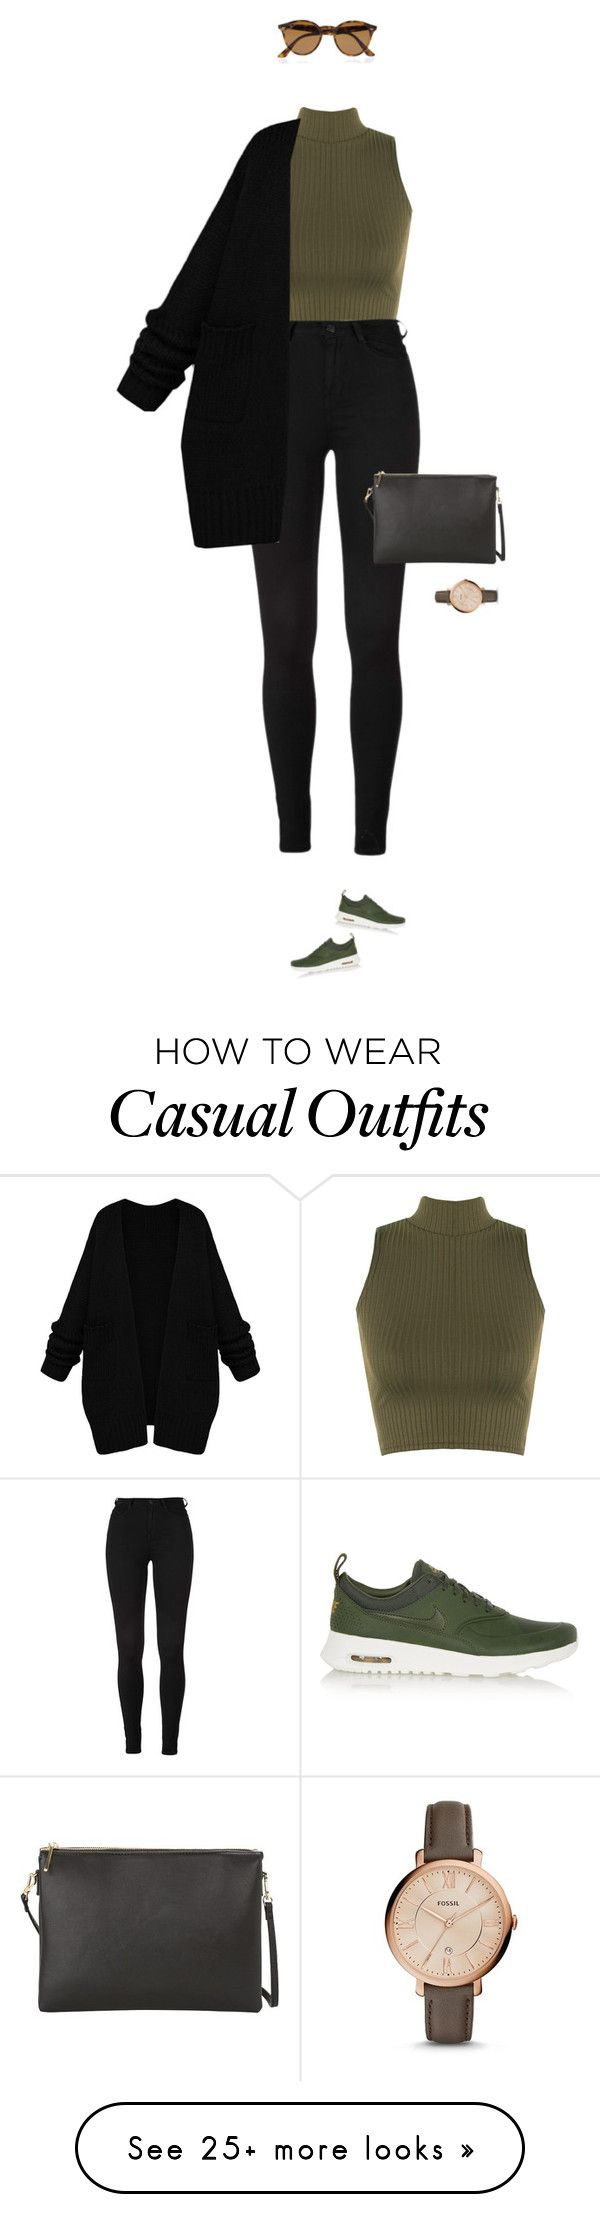 """Casual at its best !"" by azzra on Polyvore featuring WearAll, NIKE, Ray-Ban, MANGO, FOSSIL, women's clothing, women, female, woman and misses"